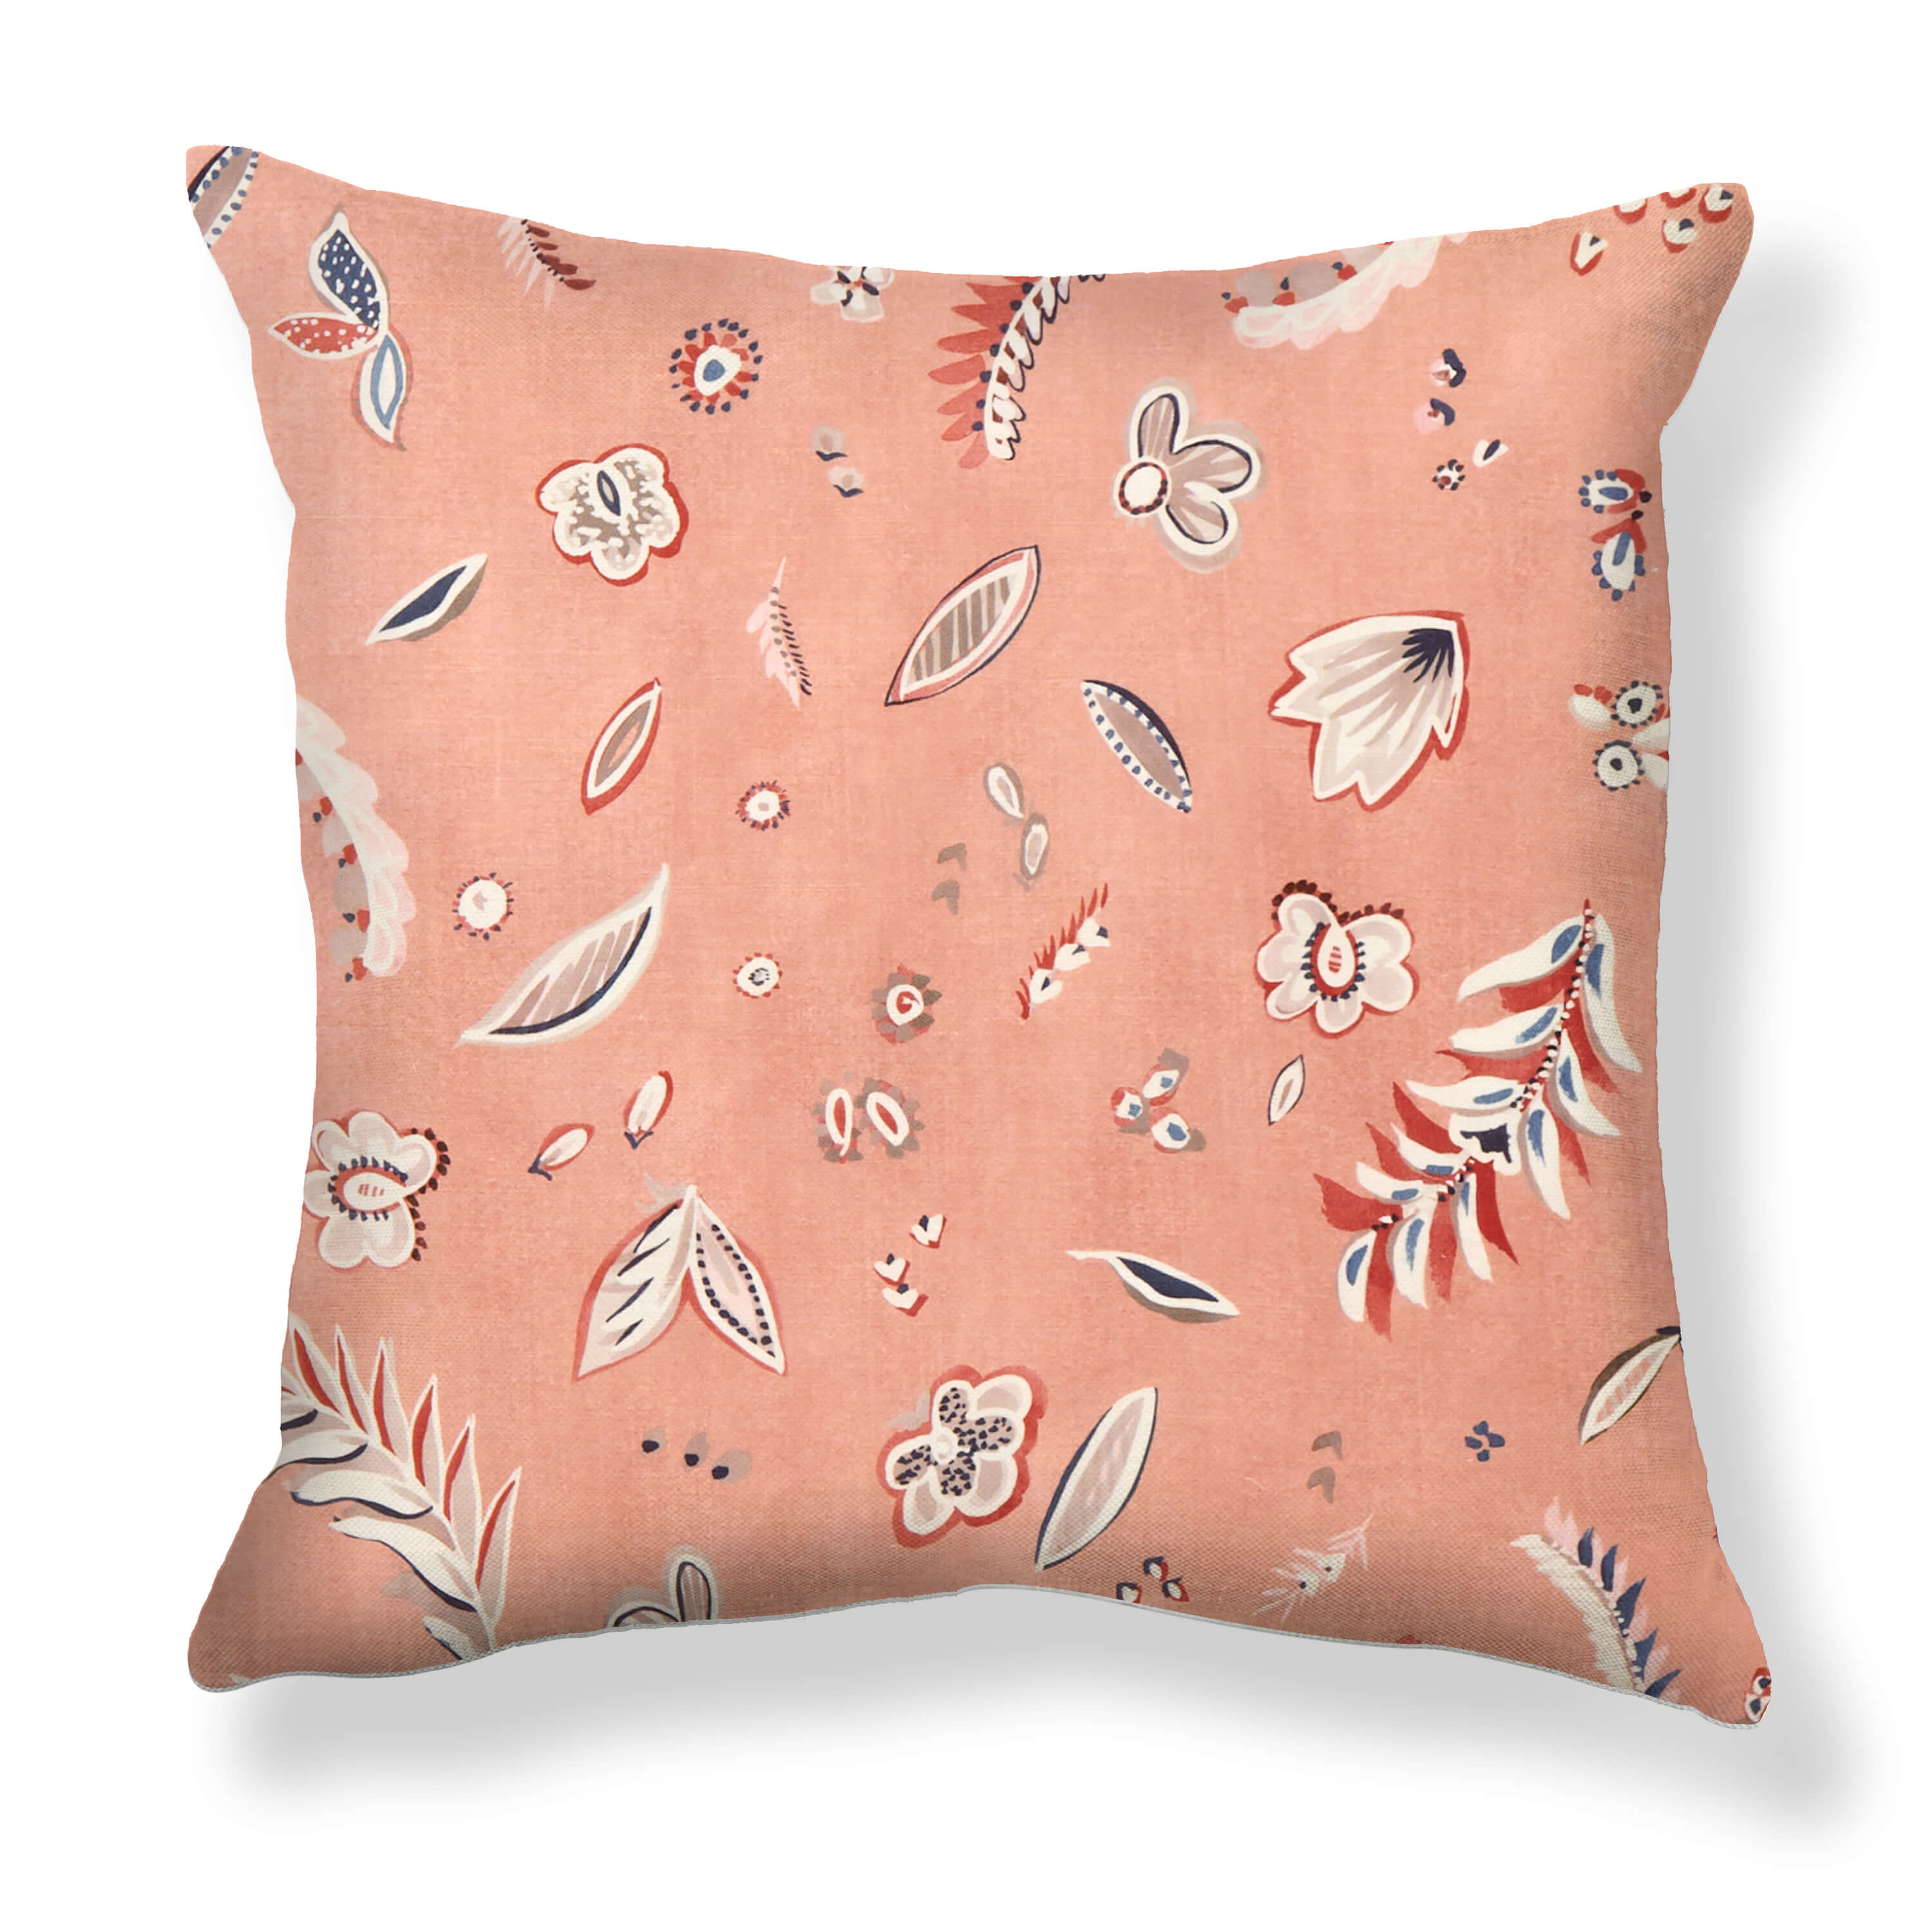 Flora Pillows in Terracotta